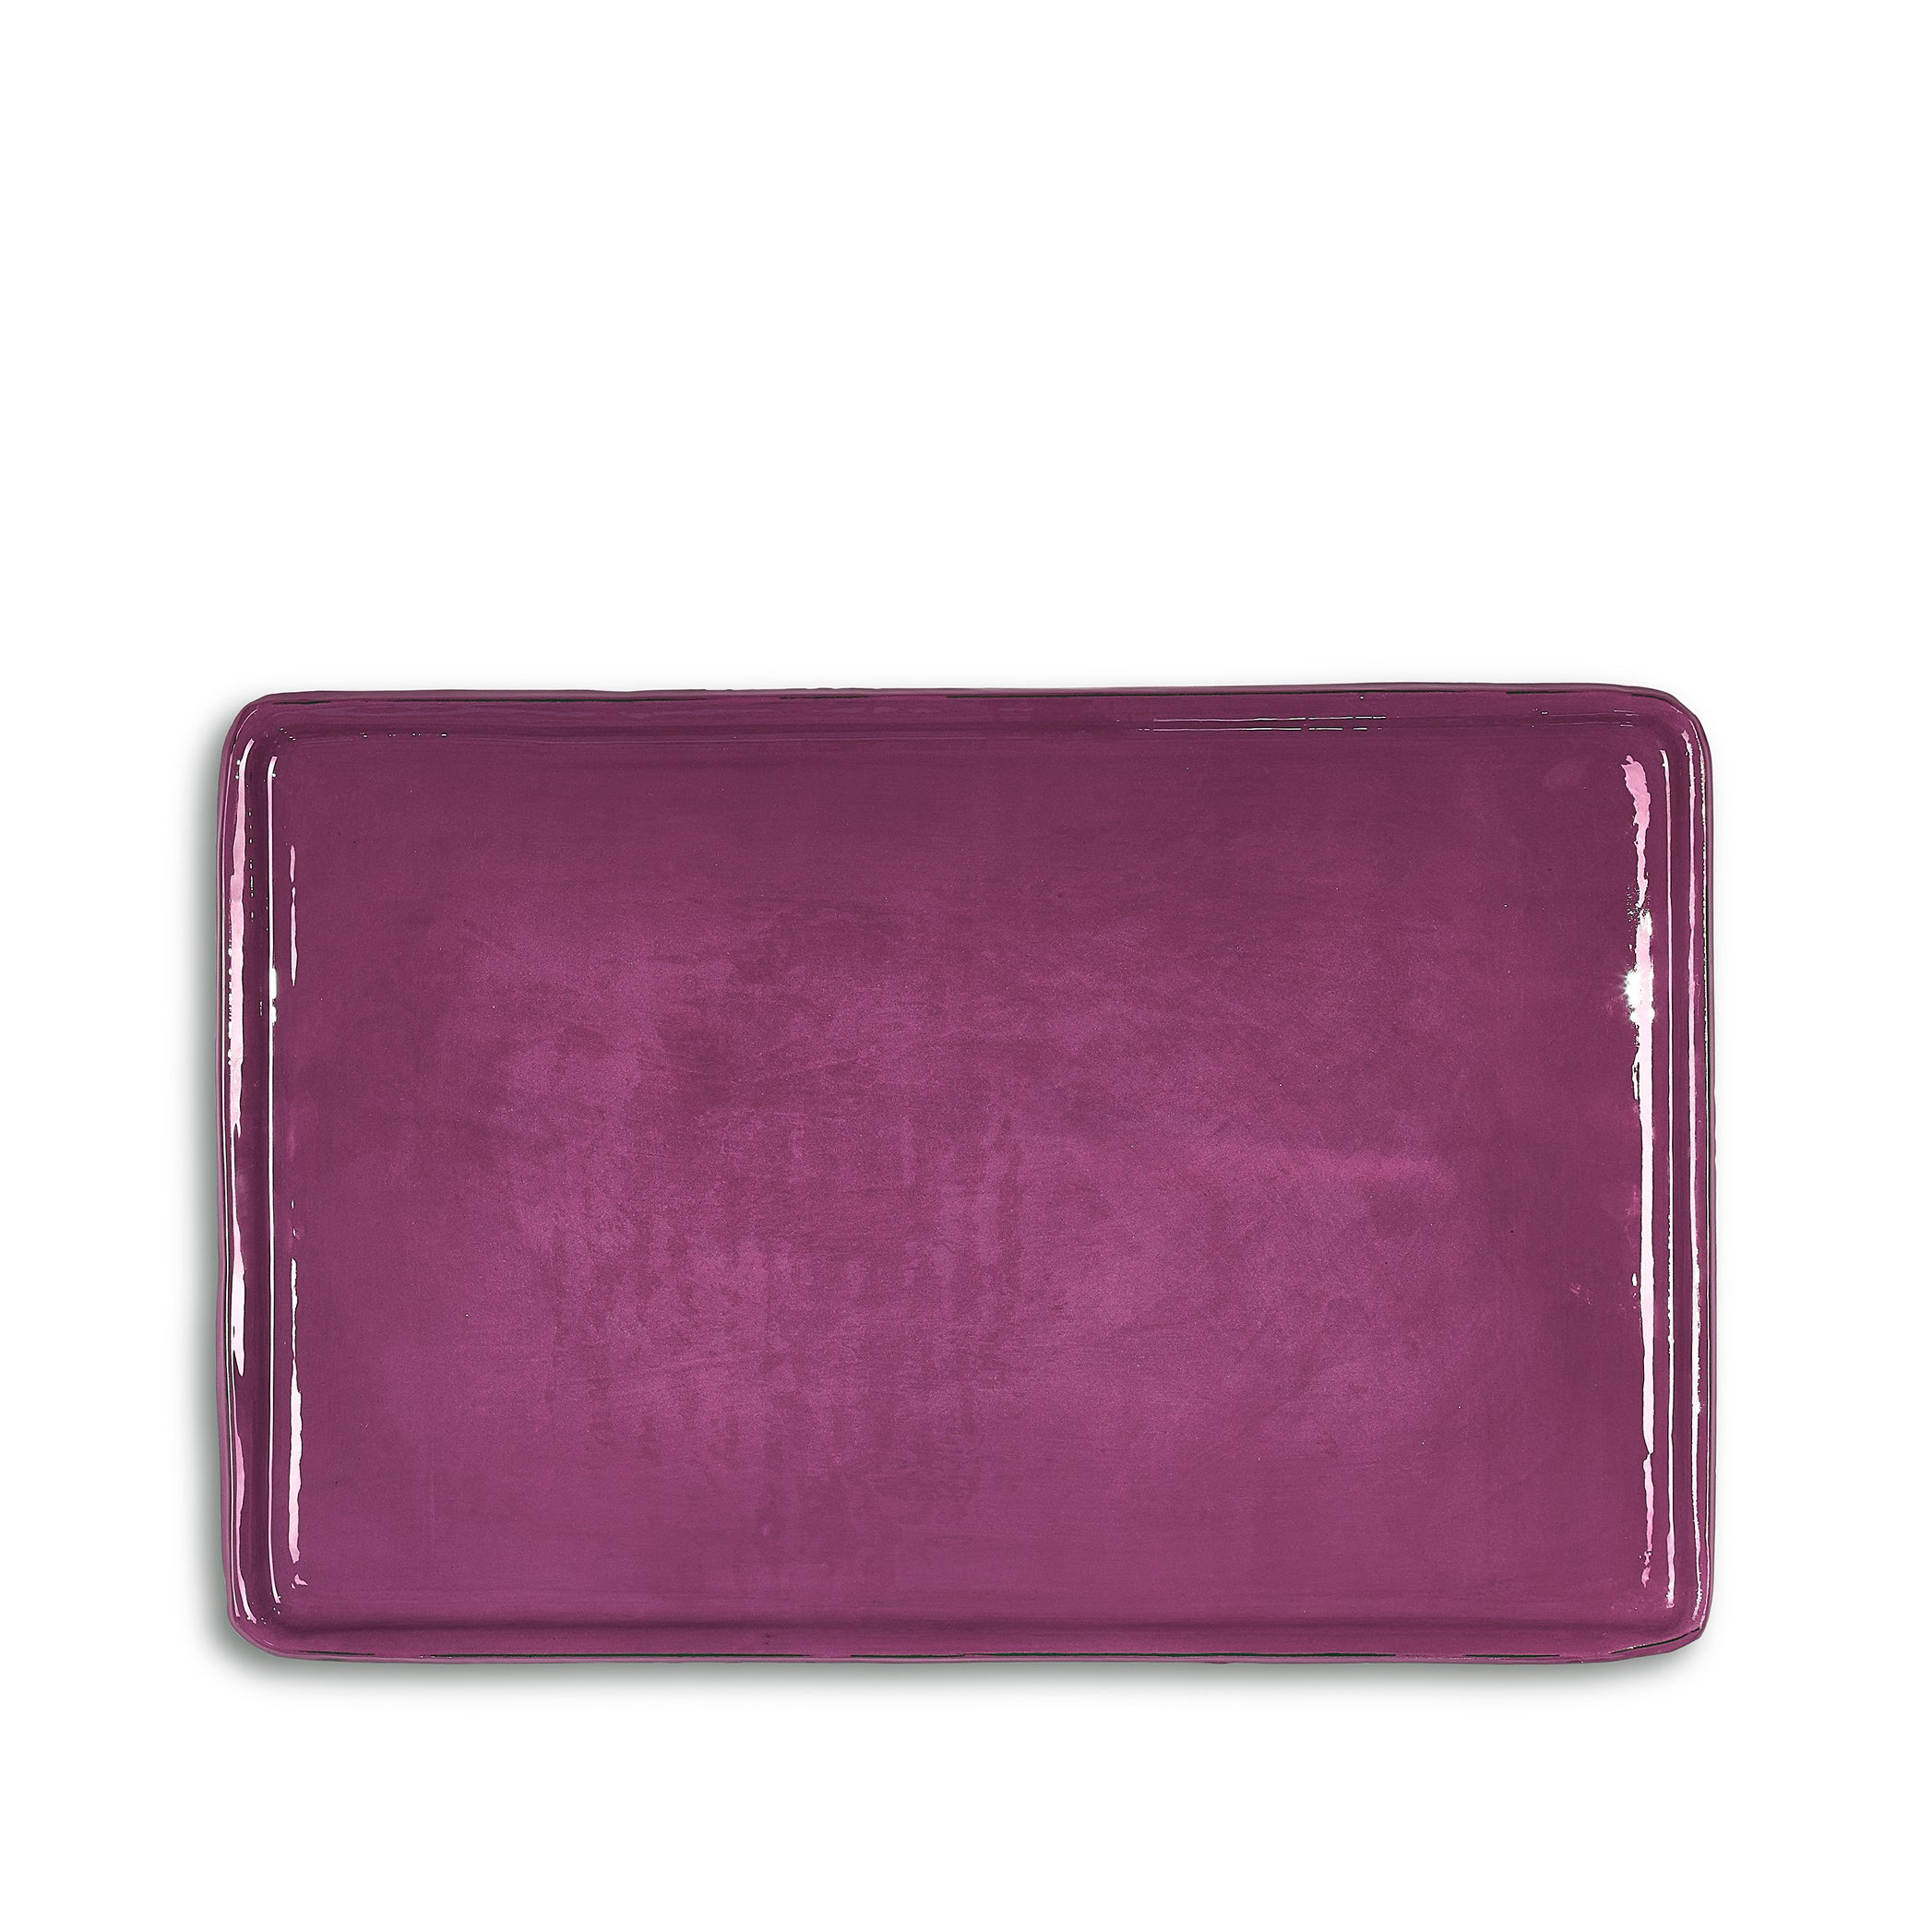 Ceramic Tray in Purple